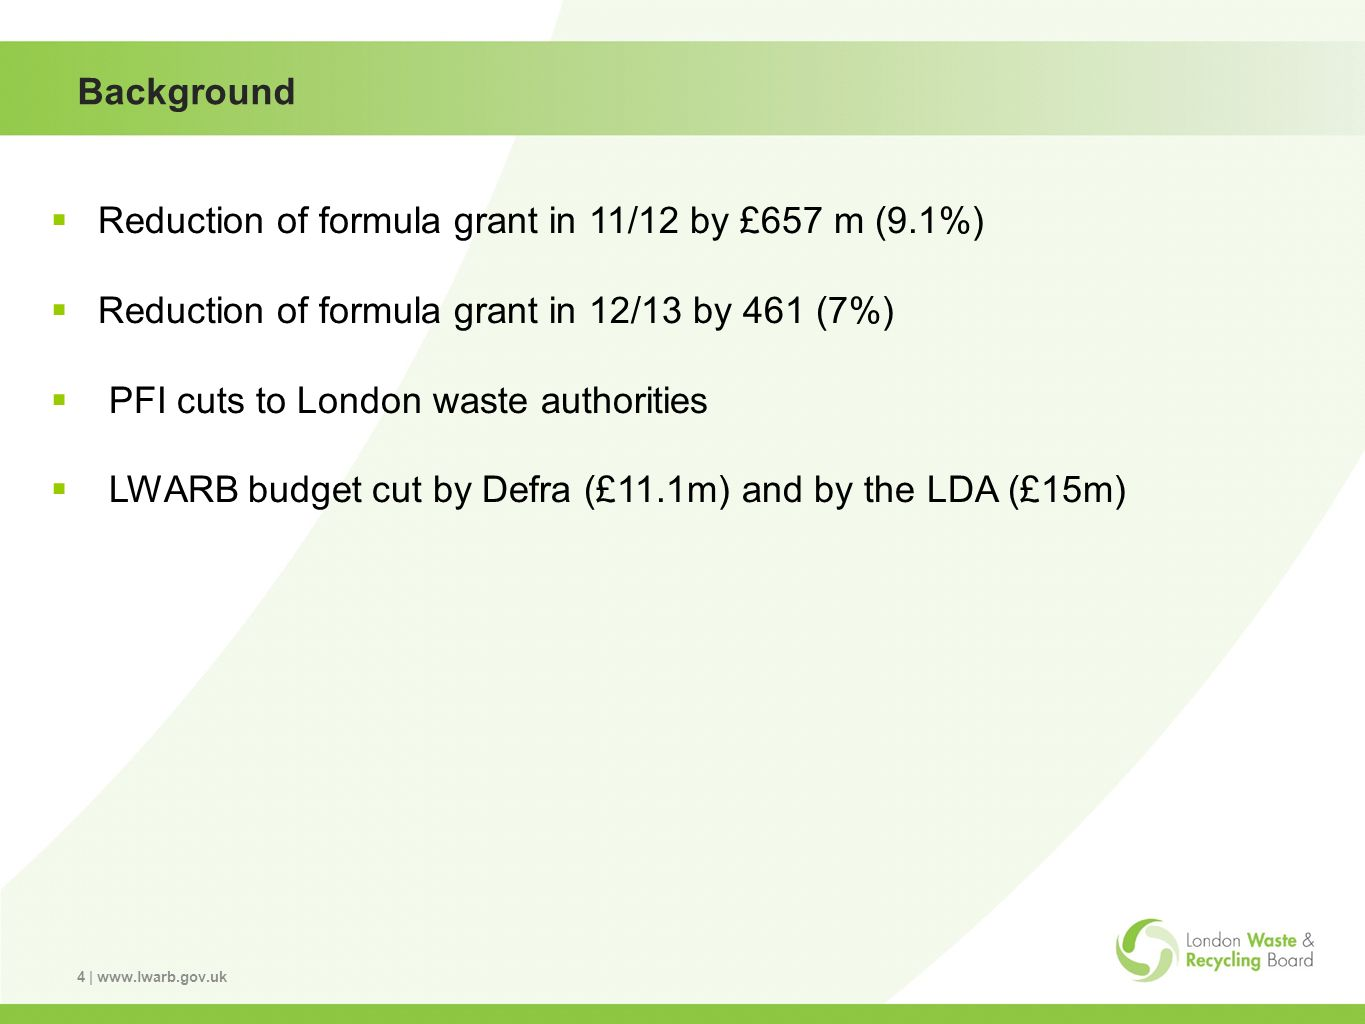 4 | www.lwarb.gov.uk Background Reduction of formula grant in 11/12 by £657 m (9.1%) Reduction of formula grant in 12/13 by 461 (7%) PFI cuts to London waste authorities LWARB budget cut by Defra (£11.1m) and by the LDA (£15m)